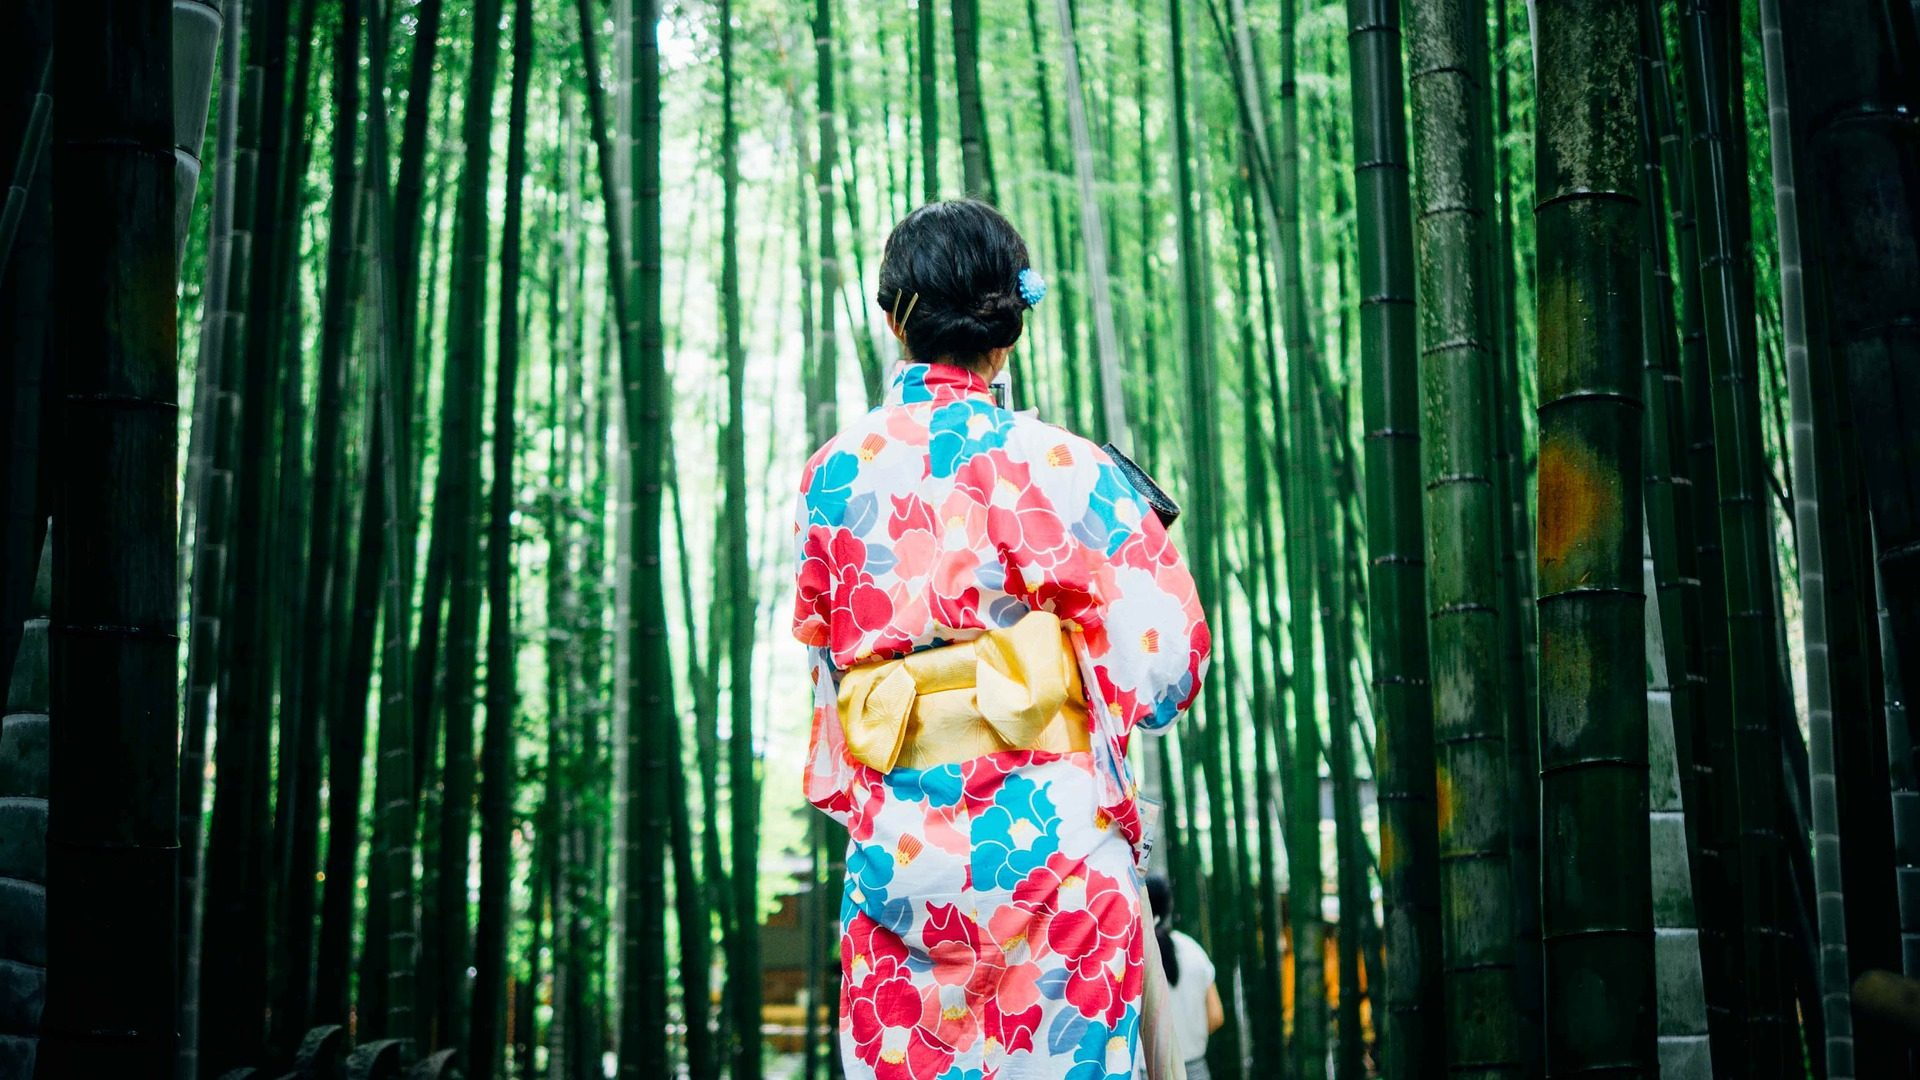 Wald, Bambú, Frau, Kleid, traditionelle, Kimono, Japan - Wallpaper HD - Prof.-falken.com